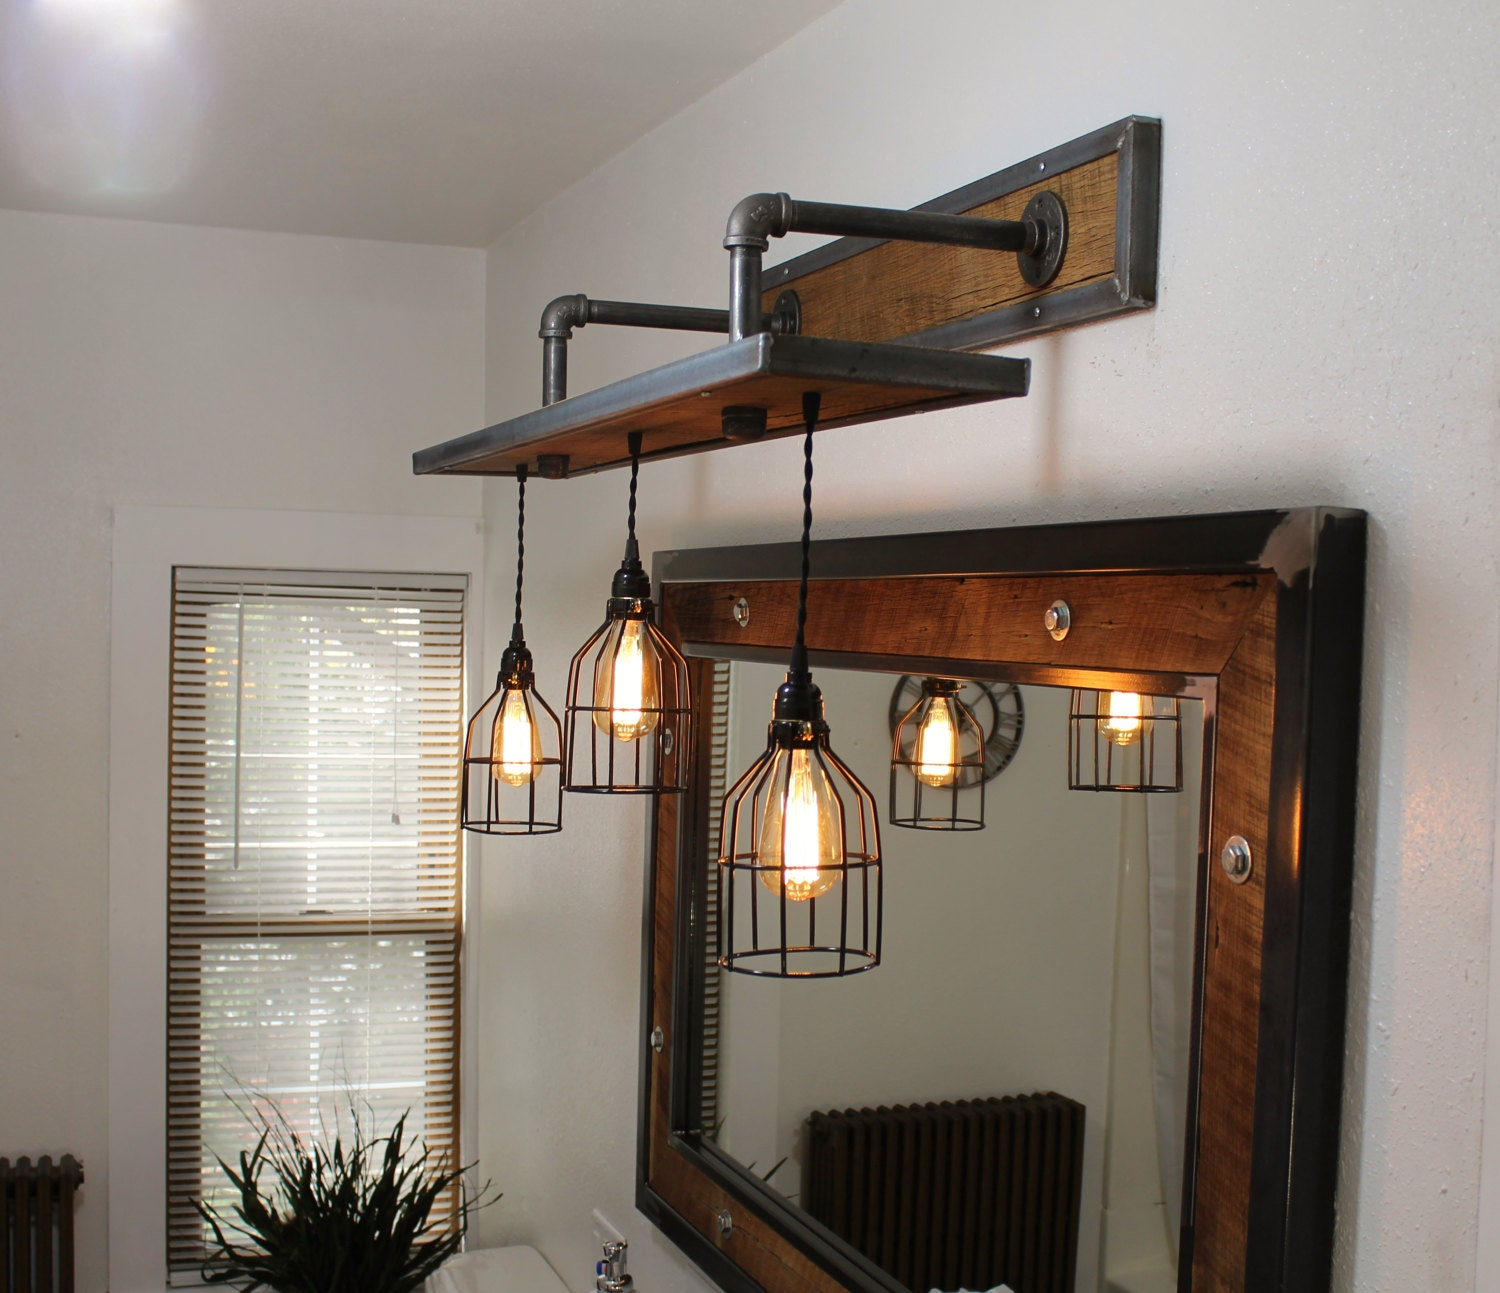 Rustic Industrial Light Steel And Barn Wood Vanity Light: Rustic Industrial Light Steel And Barn Wood Vanity Light